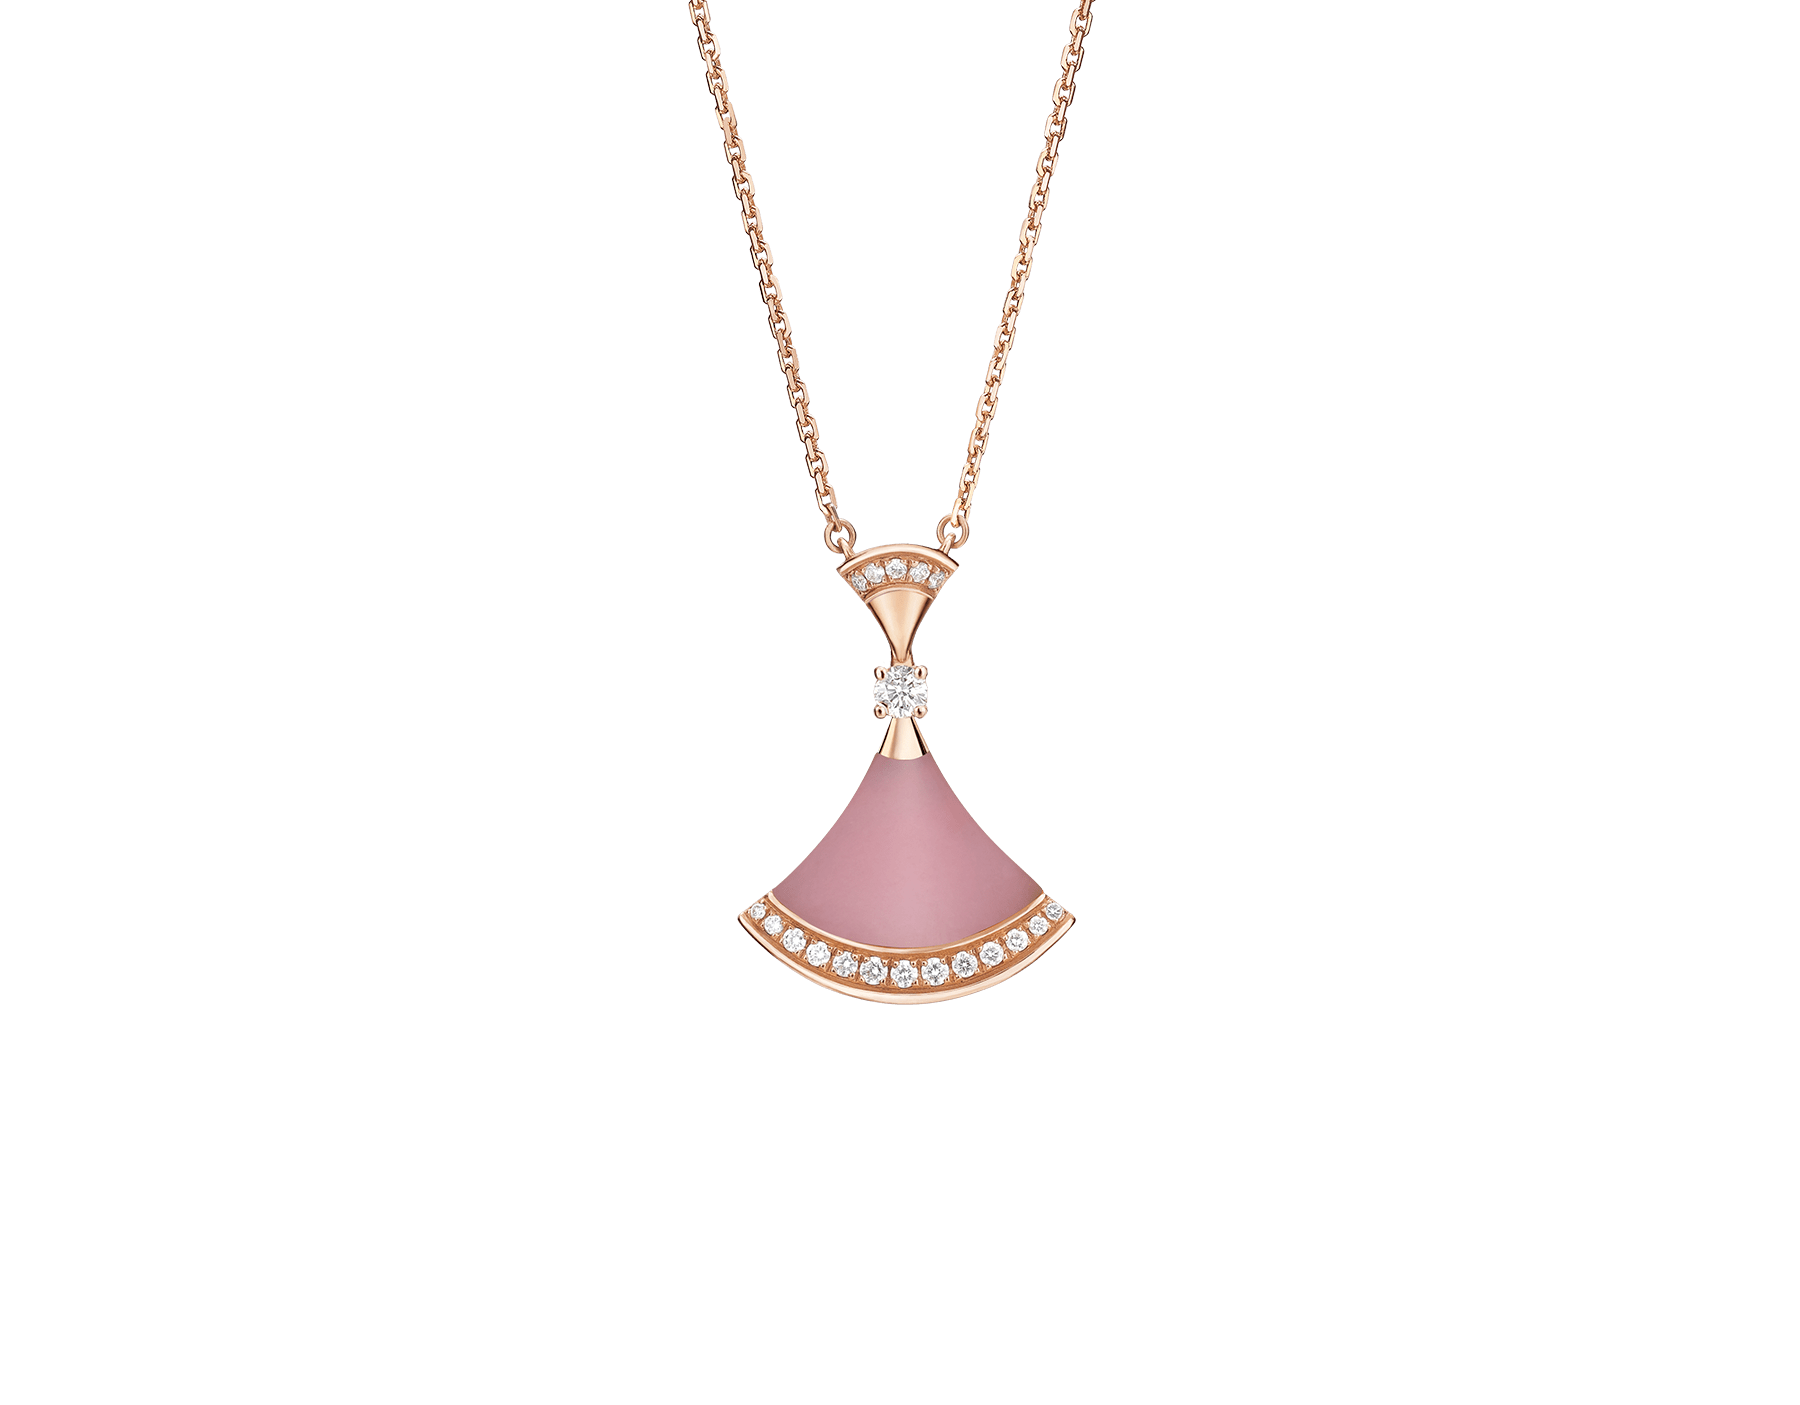 DIVAS' DREAM necklace in 18 kt rose gold, with pendant set with pink opal, a diamond (0.10 ct) and pavé diamonds (0.20 ct). 354340 image 3